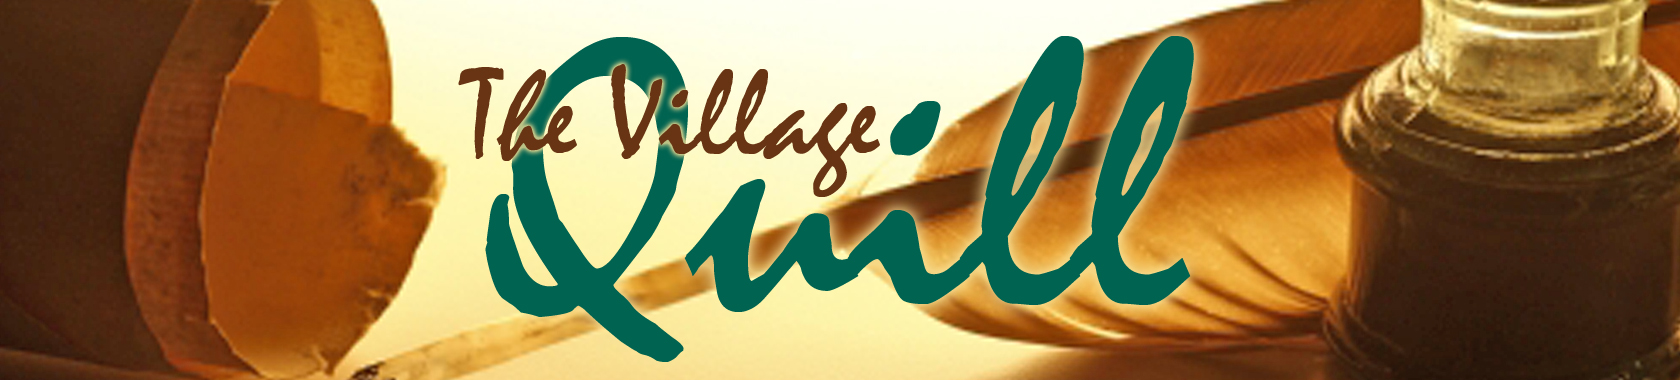 The Village Quill